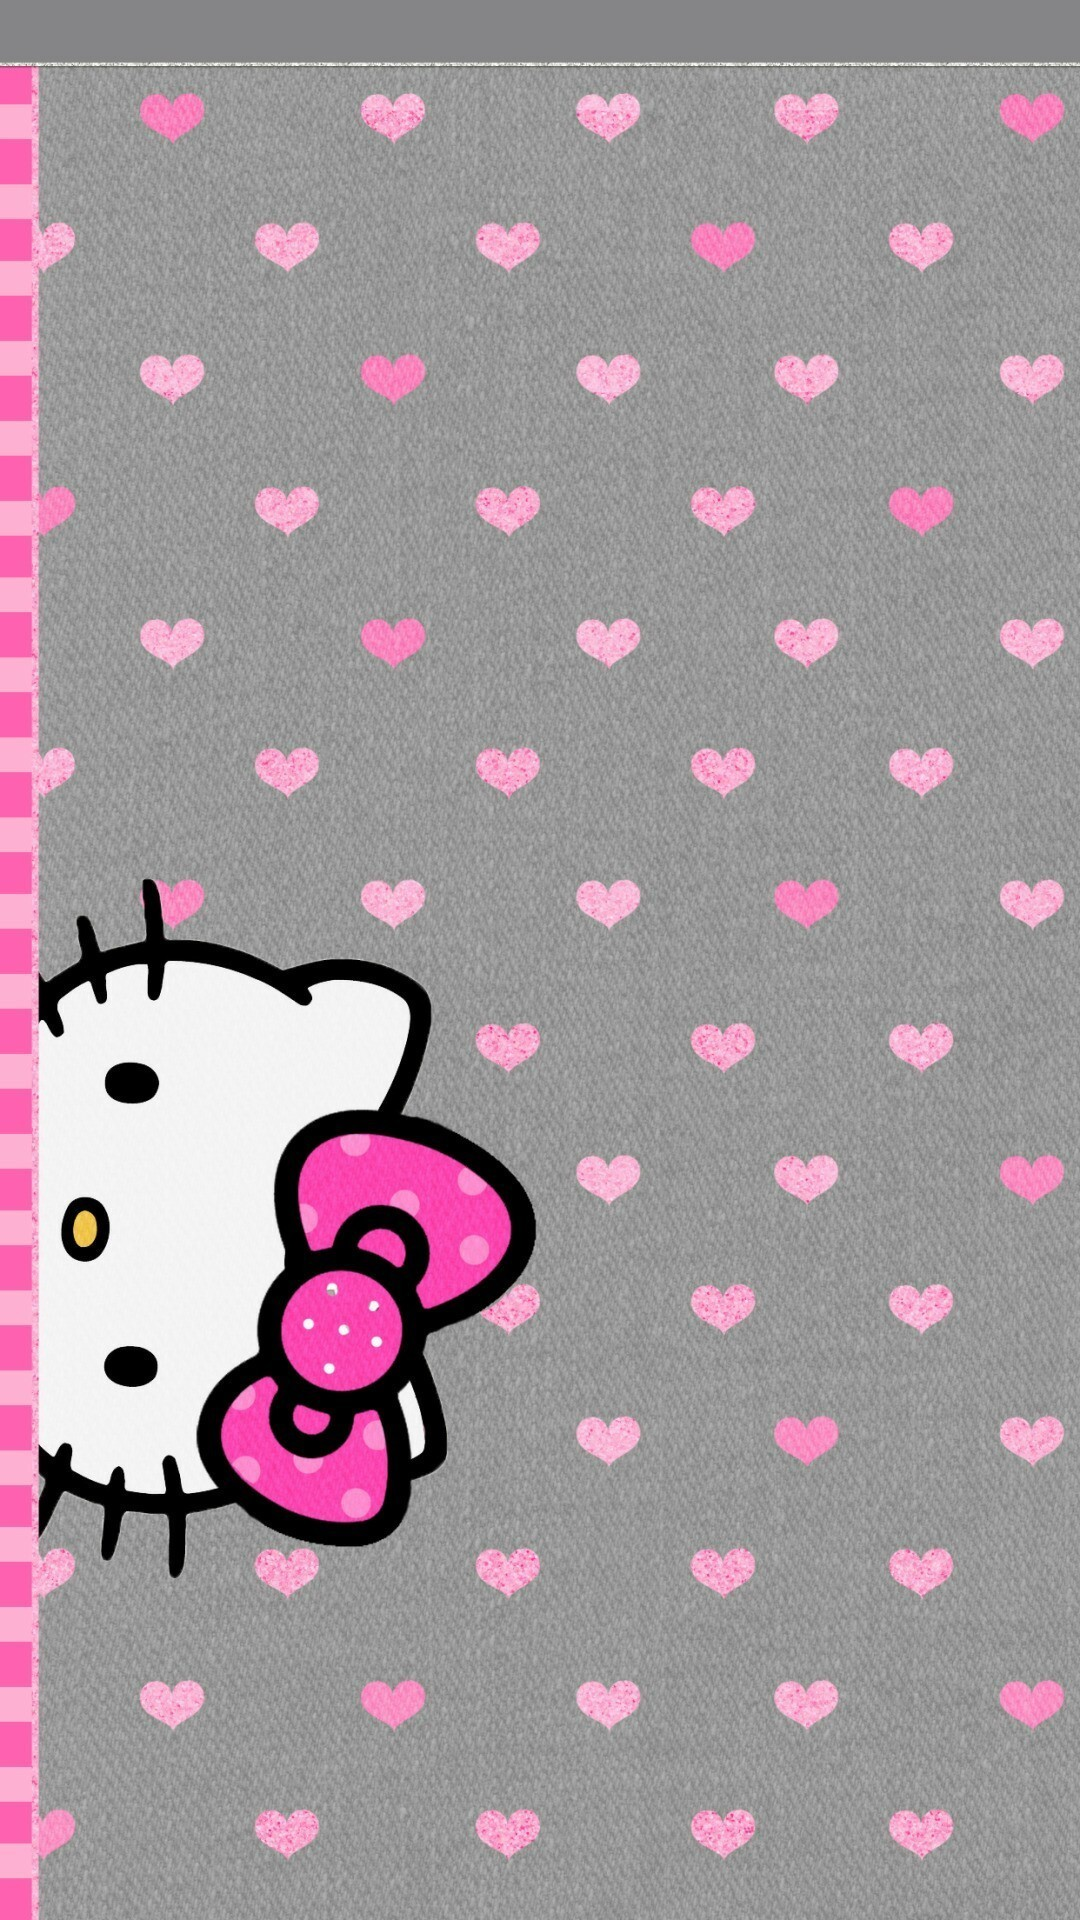 1080x1920 1242x2208 Hello Kitty Backgrounds, Hello Kitty Wallpaper, Background  Patterns, Wallpapers, Walpaper Hello Kitty